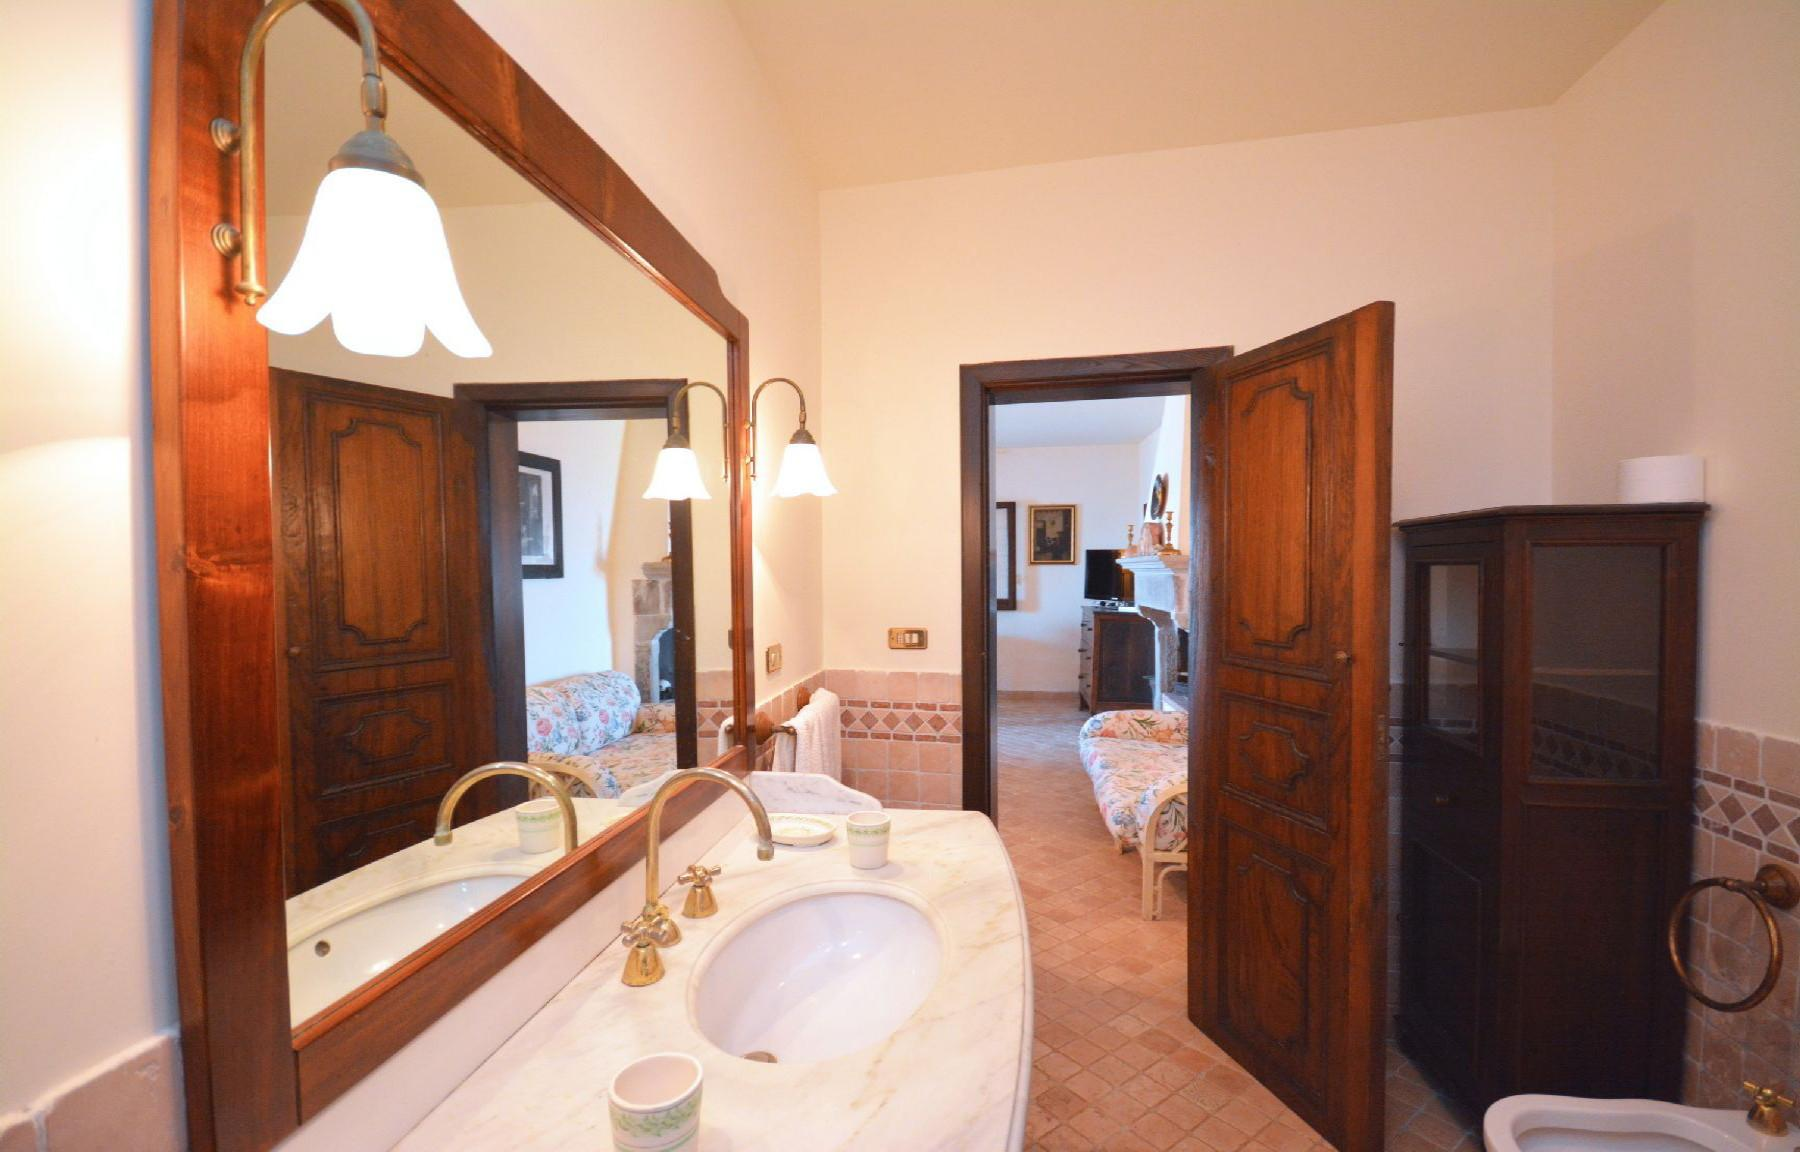 Bagno di pertinenza camera A